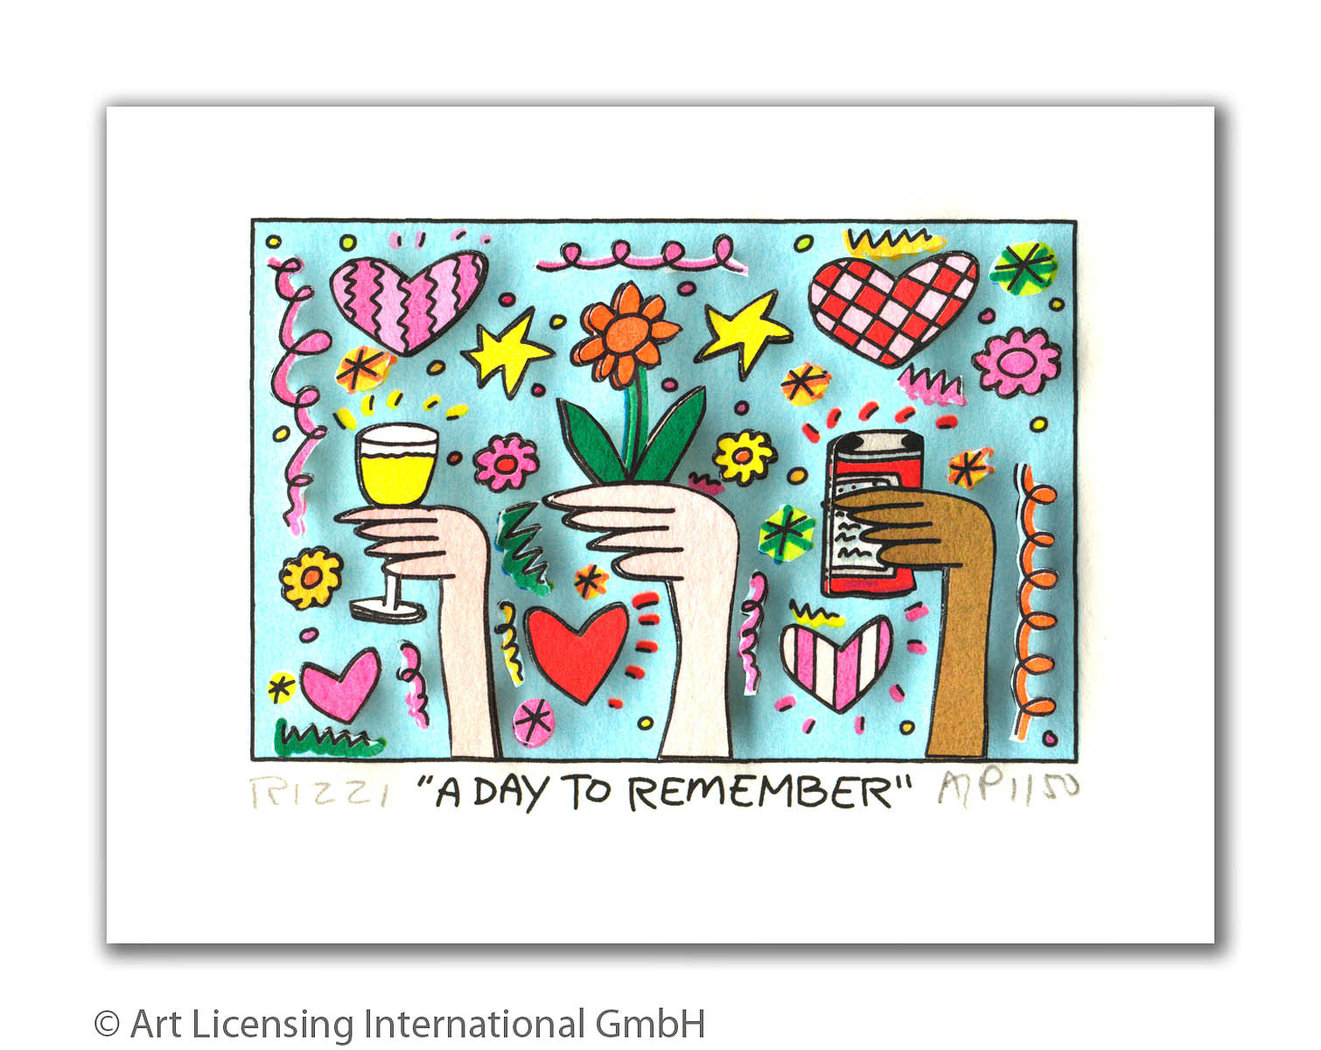 James Rizzi - A DAY TO REMEMBER